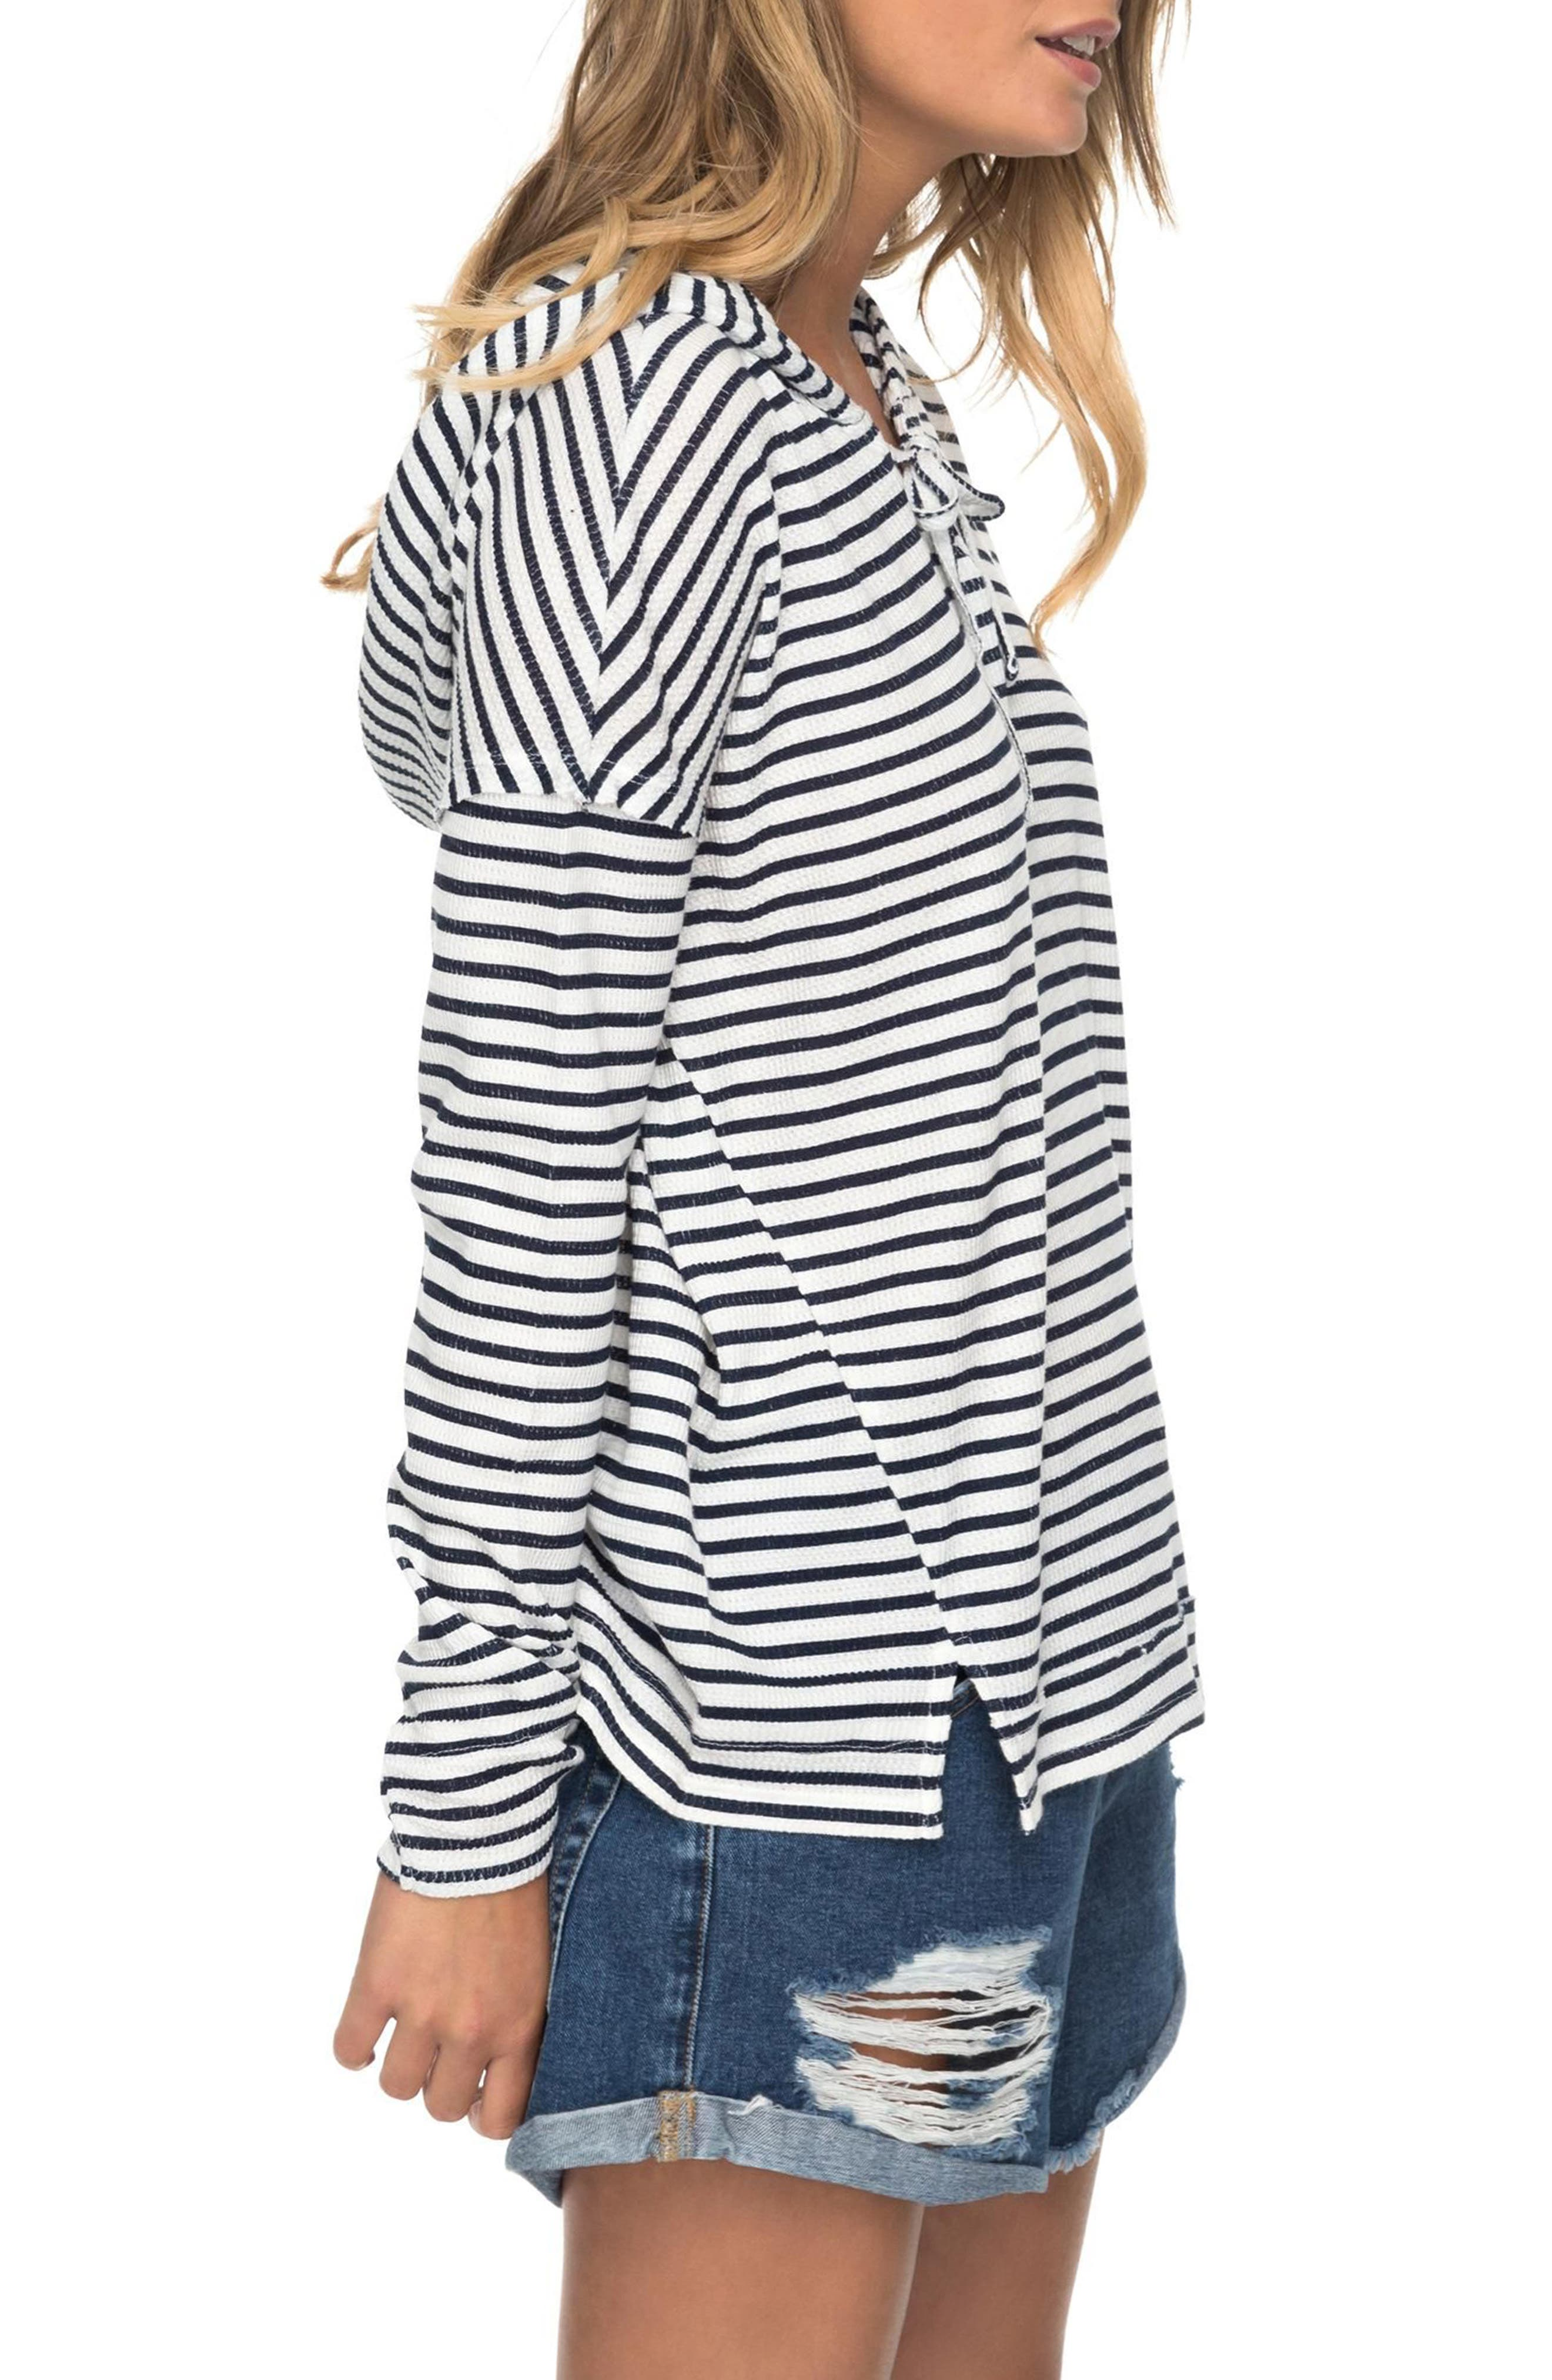 Wanted and Wild Thermal Hooded Top,                             Alternate thumbnail 4, color,                             Marshmallow Classic Stripe Vol